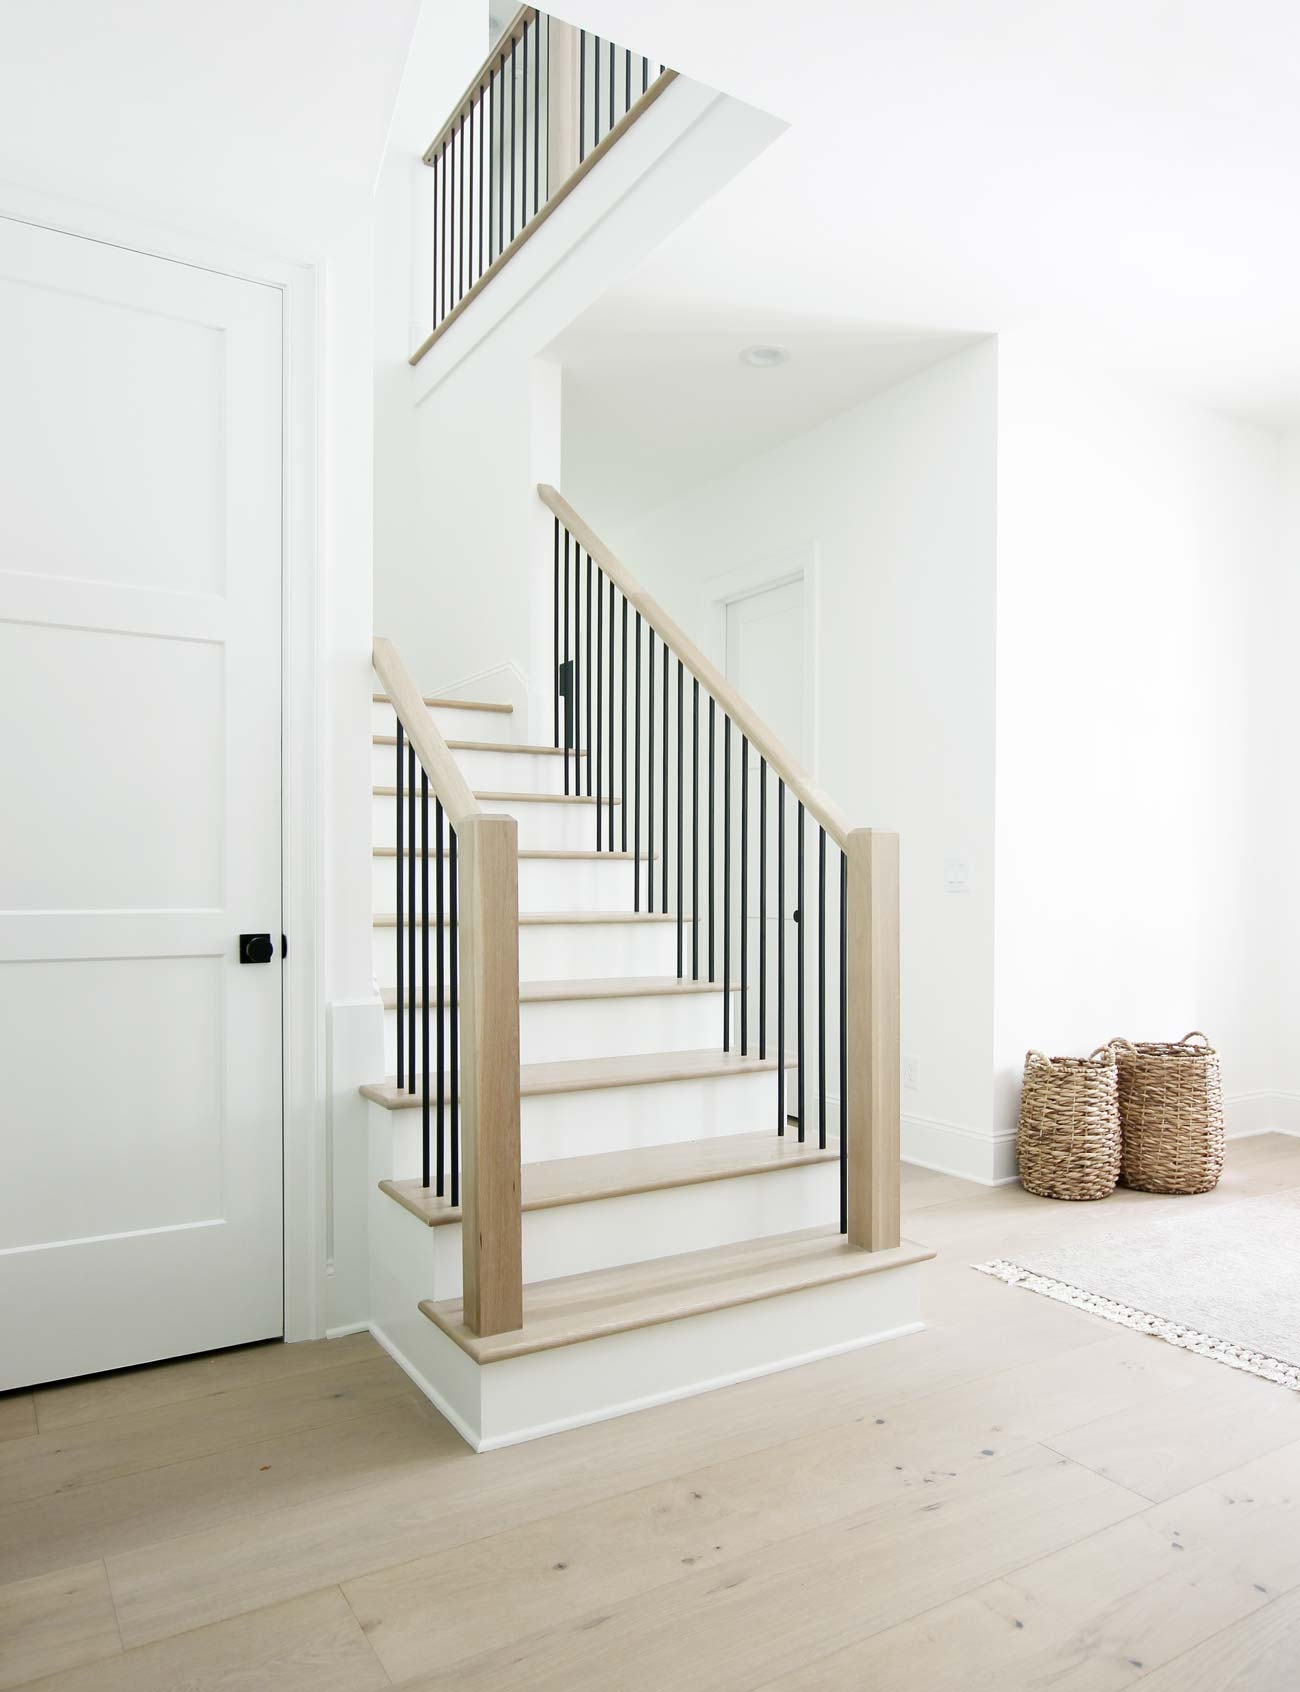 How To Match Solid Stair Treads To Prefinished Hardwood Flooring | European Oak Stair Treads | Basement Stairs | Hardwax Oil | Lumber | Risers | Wood Stair Railing